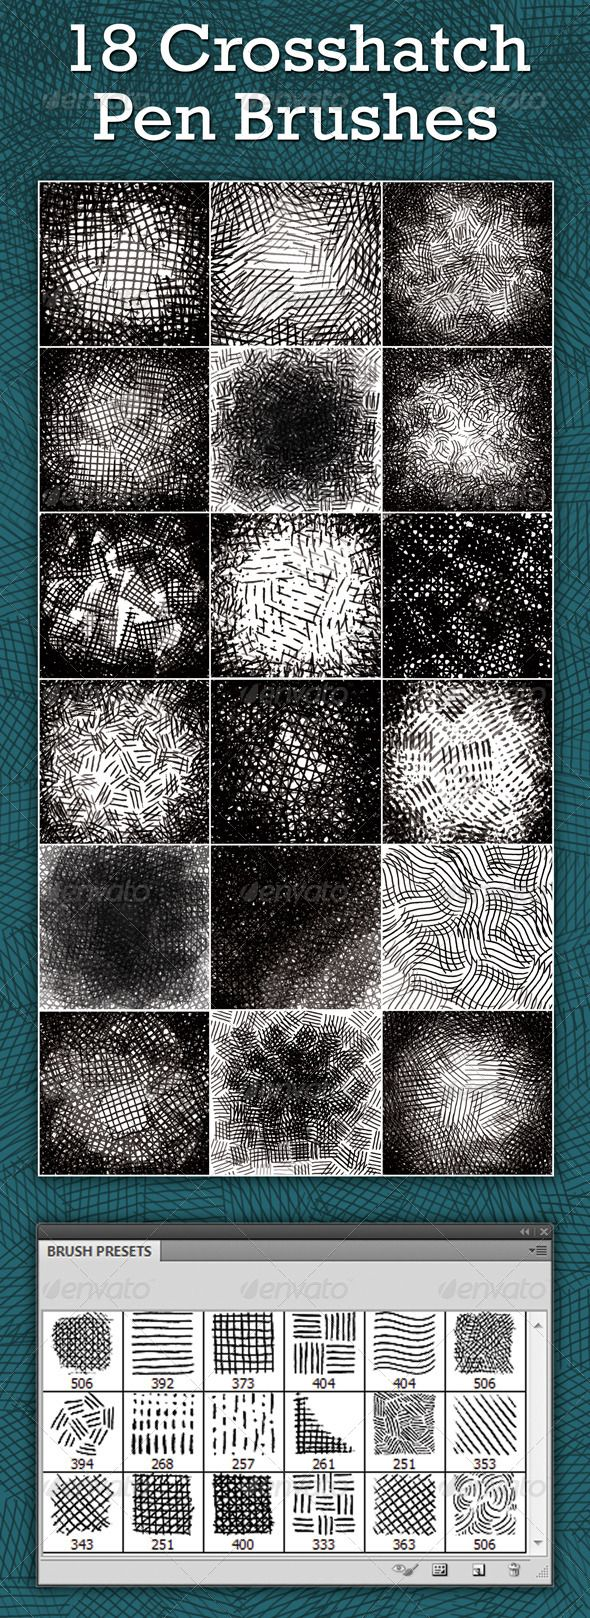 Crosshatch Pen Brushes